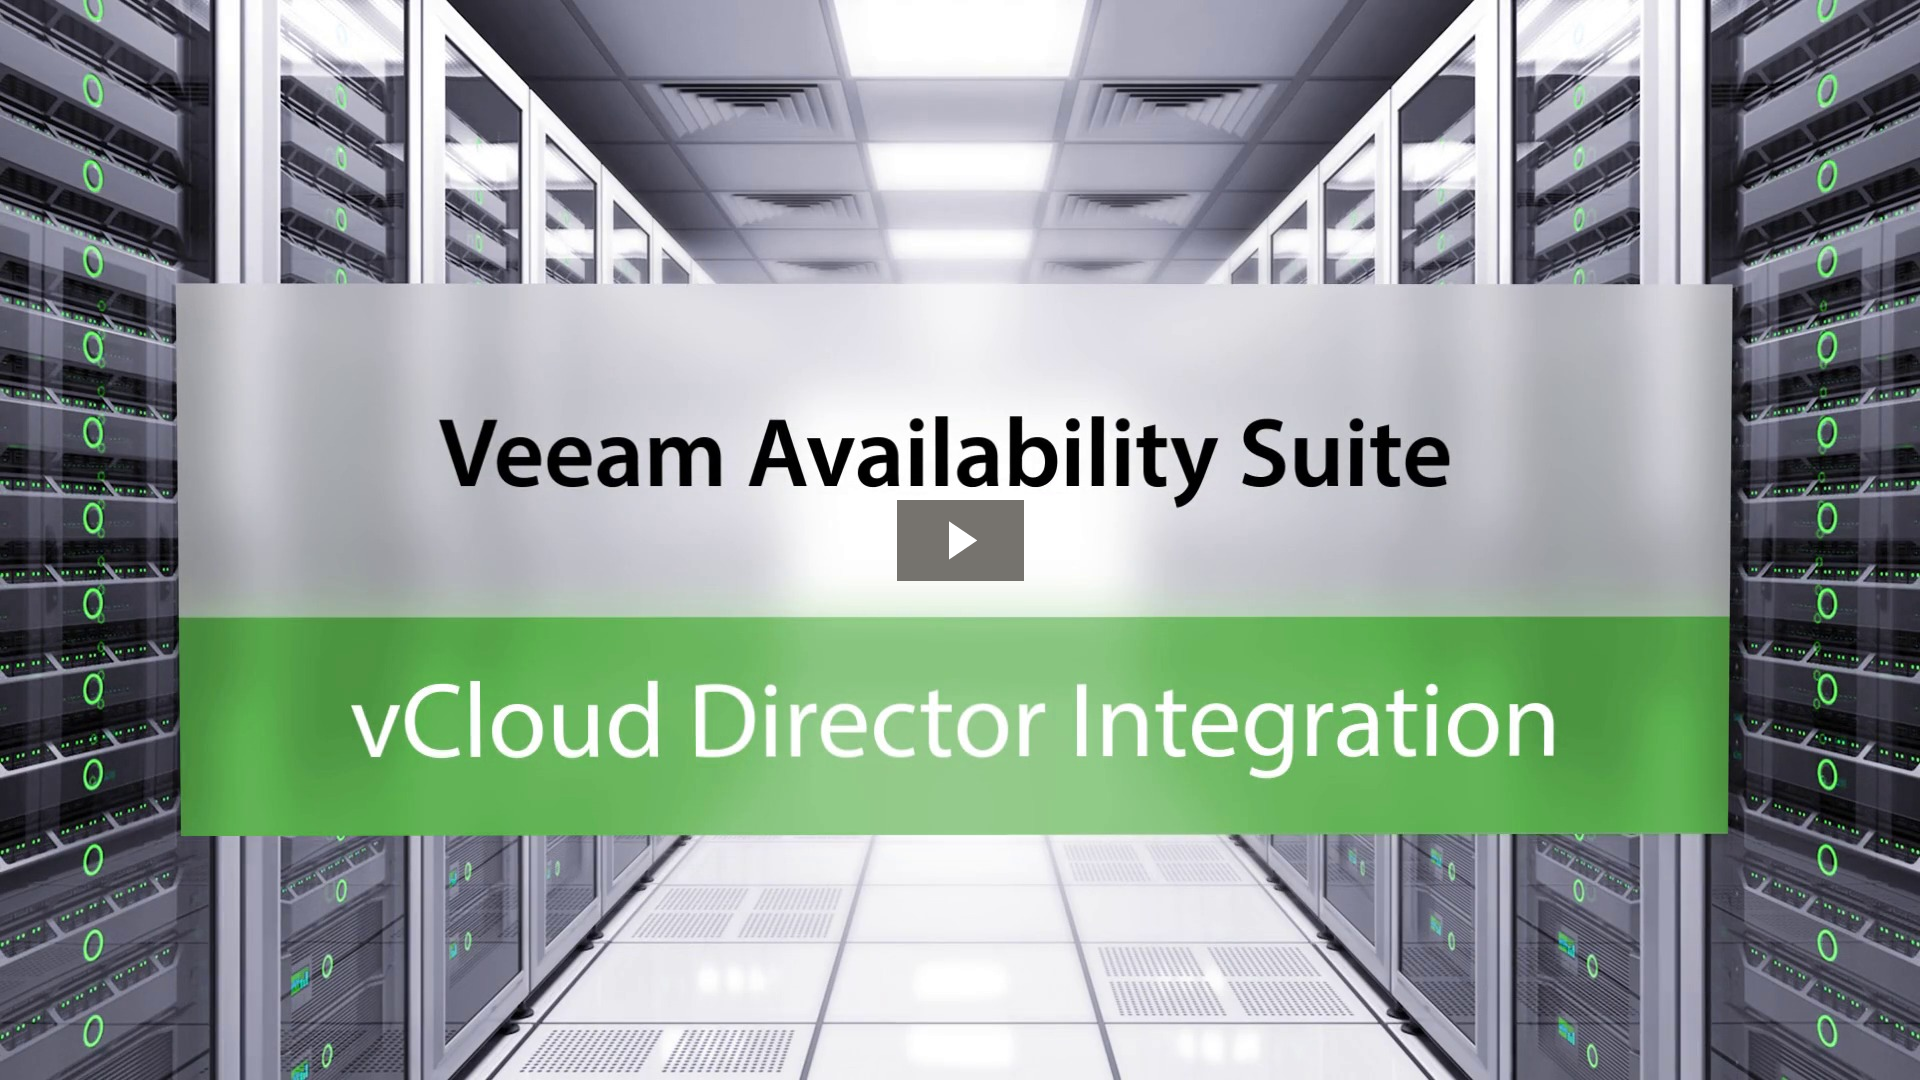 VMware vCloud Director support